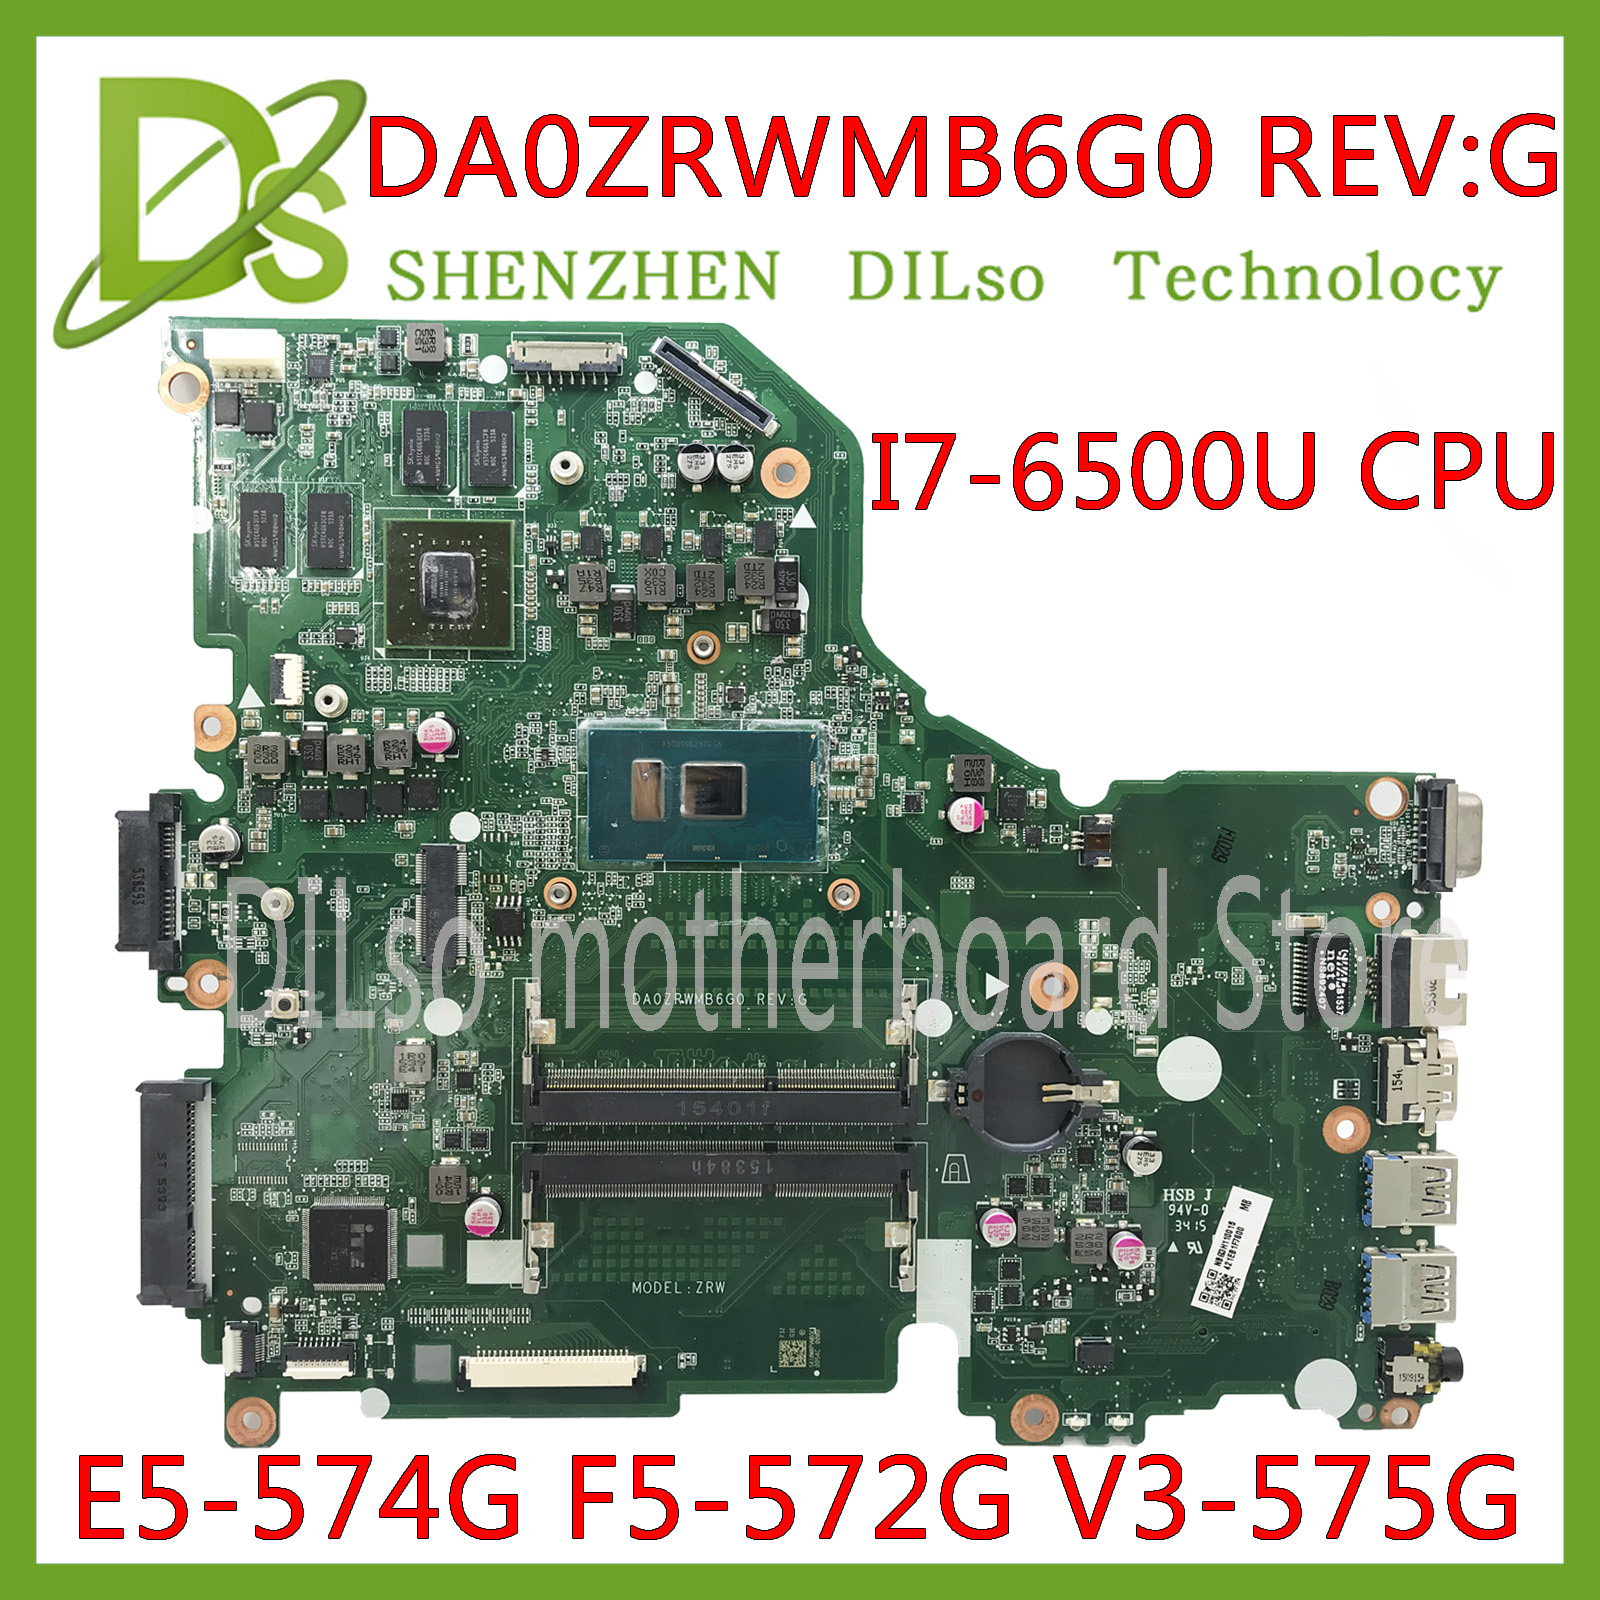 KEFU E5-574G Mainboard For Acer Aspire E5-574 E5-574G F5-572 V3-575 V3-575G Motherboard I7-6500U CPU DA0ZRWMB6G0 Test Original